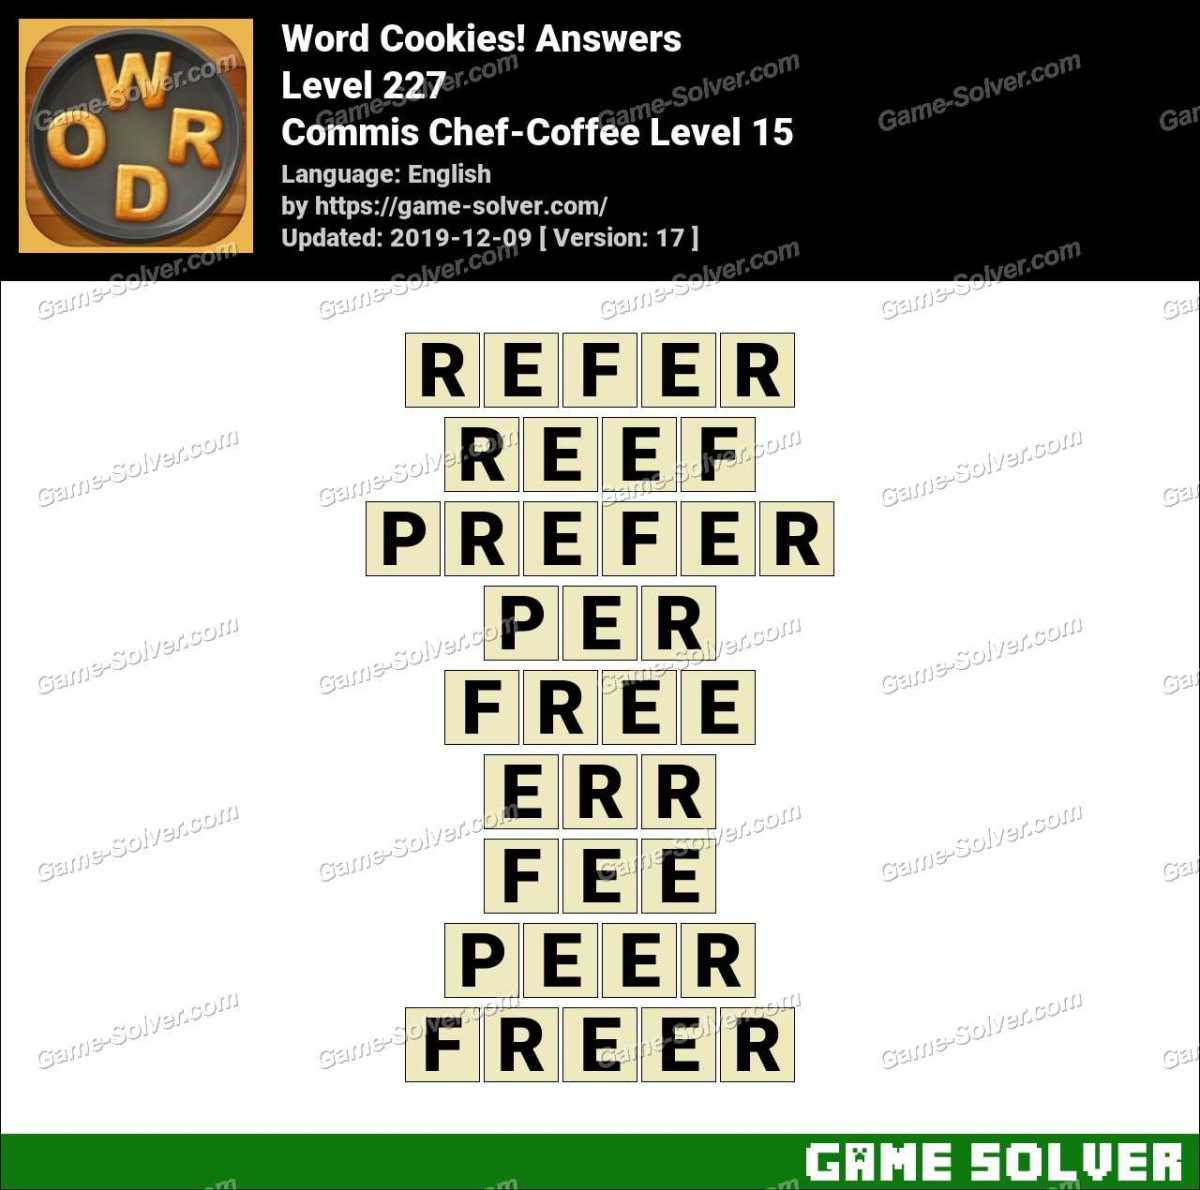 Word Cookies Commis Chef-Coffee Level 15 Answers